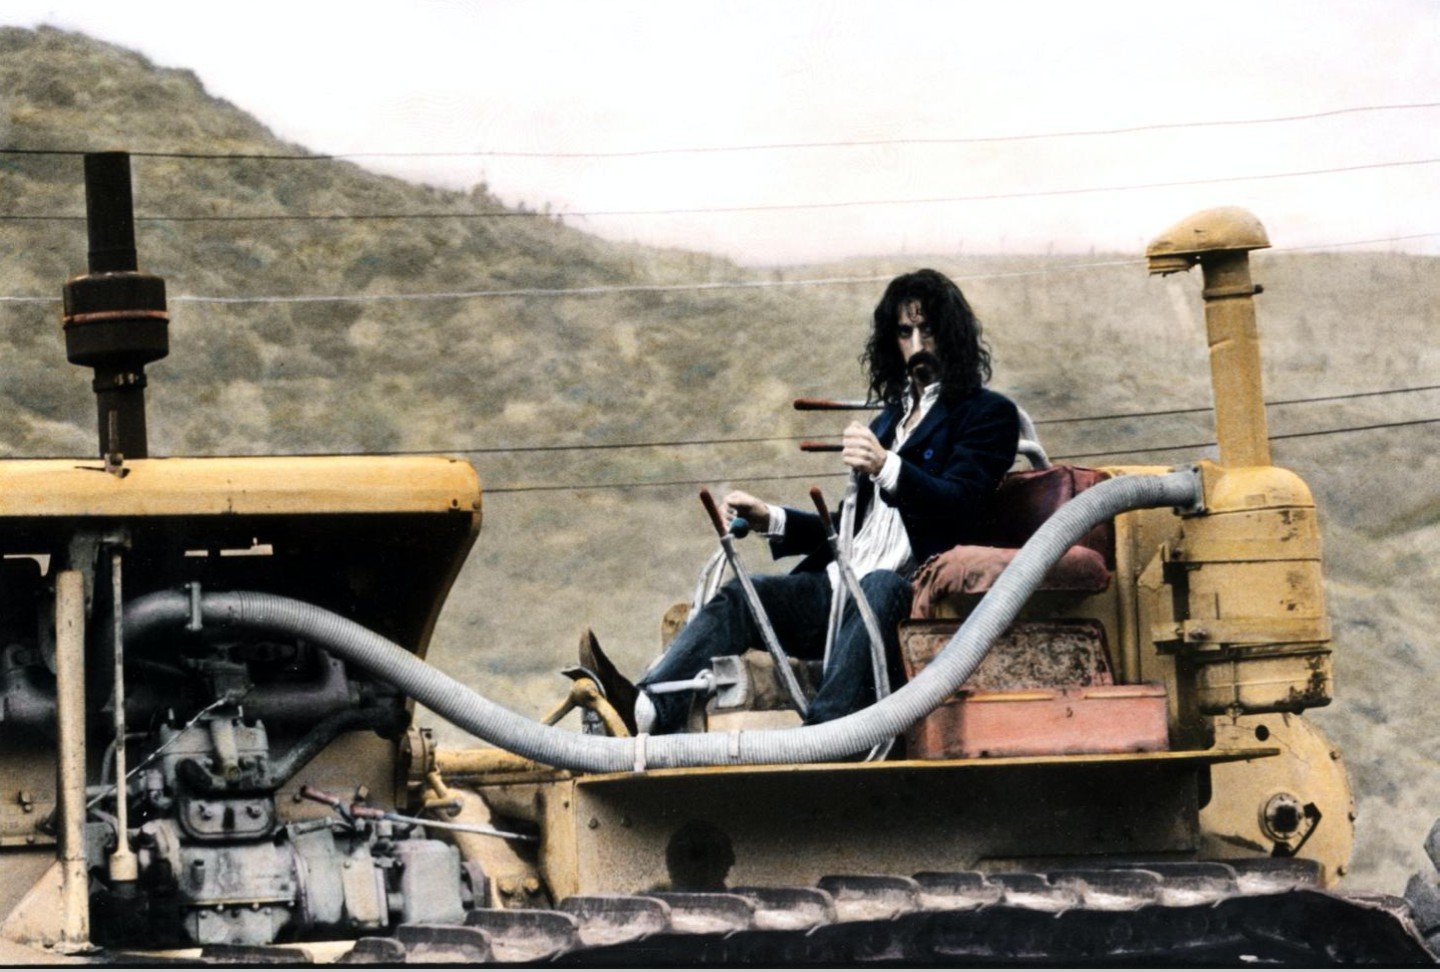 Zappa, Rock music photo history 60s